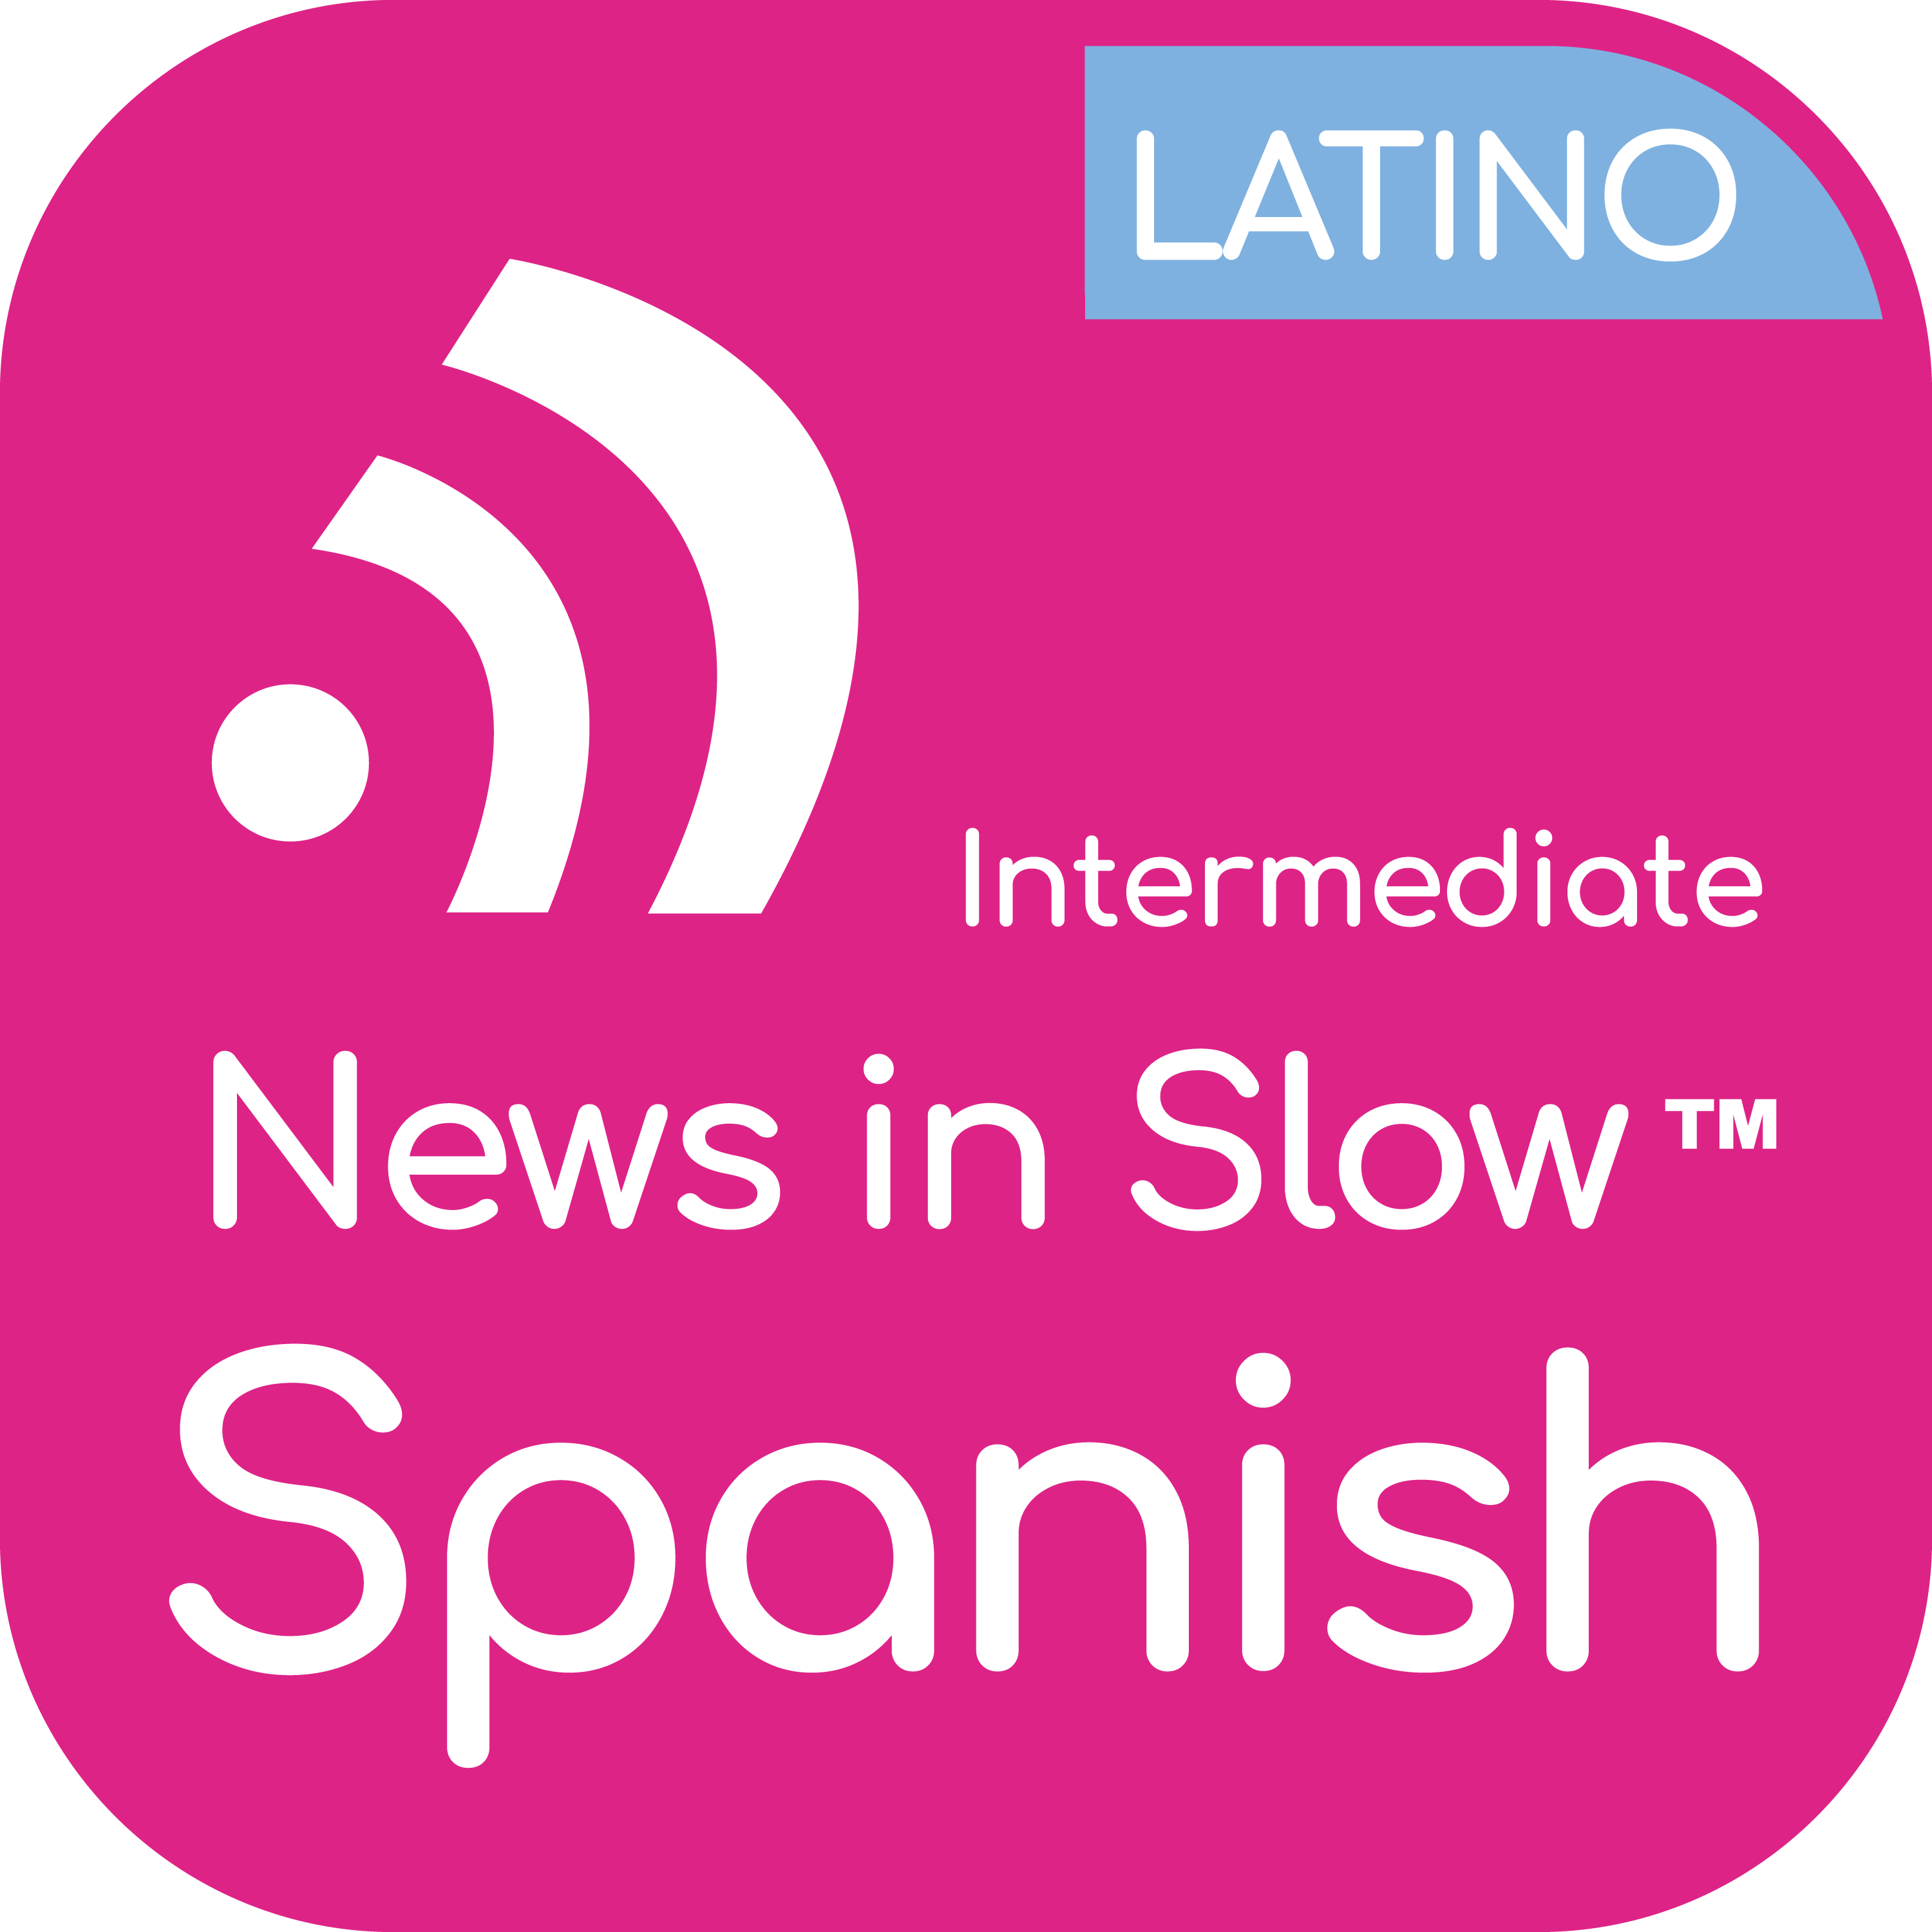 News In Slow Spanish Latino #403 - Learn Spanish through current events